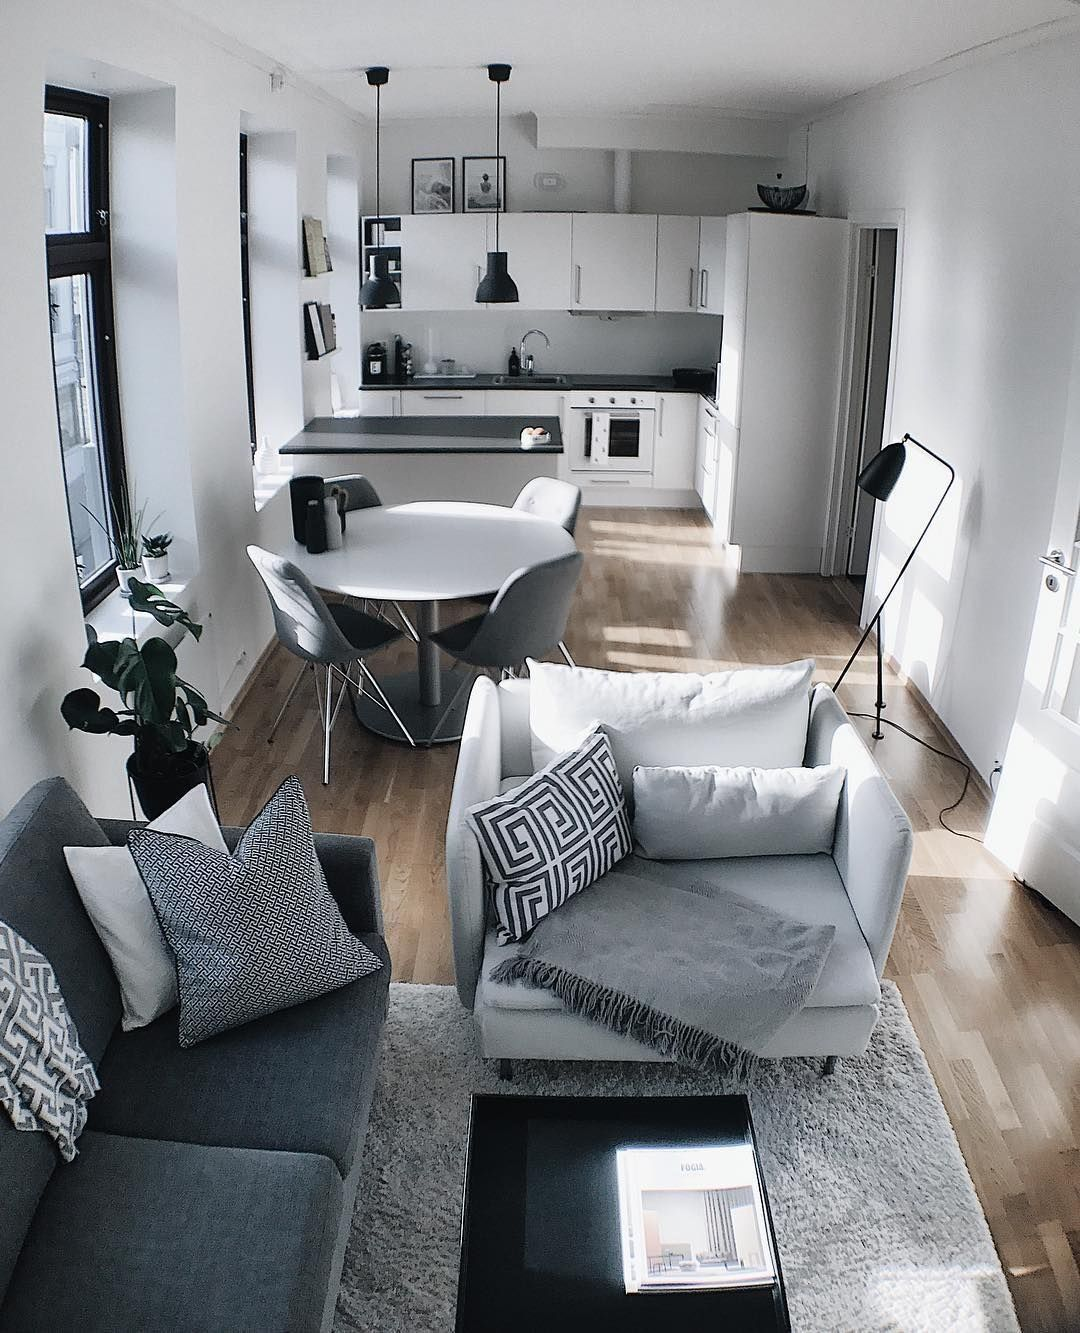 35 Apartment Decorating Ideas On A Budget For A Beautiful Space Apartment Decor Inspiration Small Apartment Living Room Small Apartment Decorating